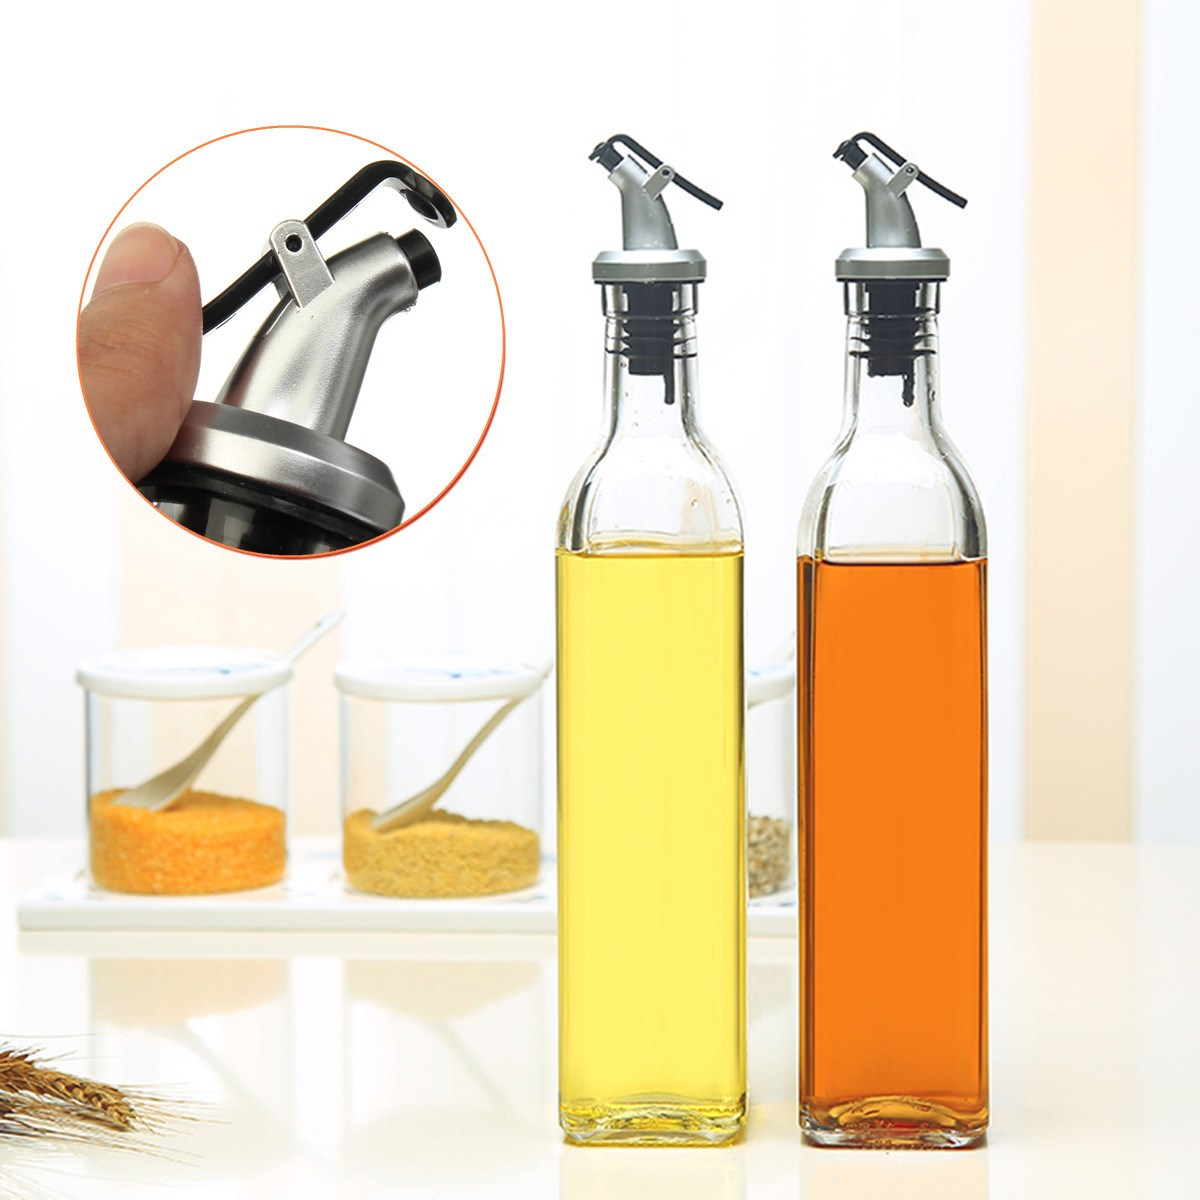 Olive Oil Vinegar Dispenser 500ml Gl Gravy Boat Pourer Cooking Wine Condiment Storage Bottle Organizer Kitchen Tools In Boats From Home